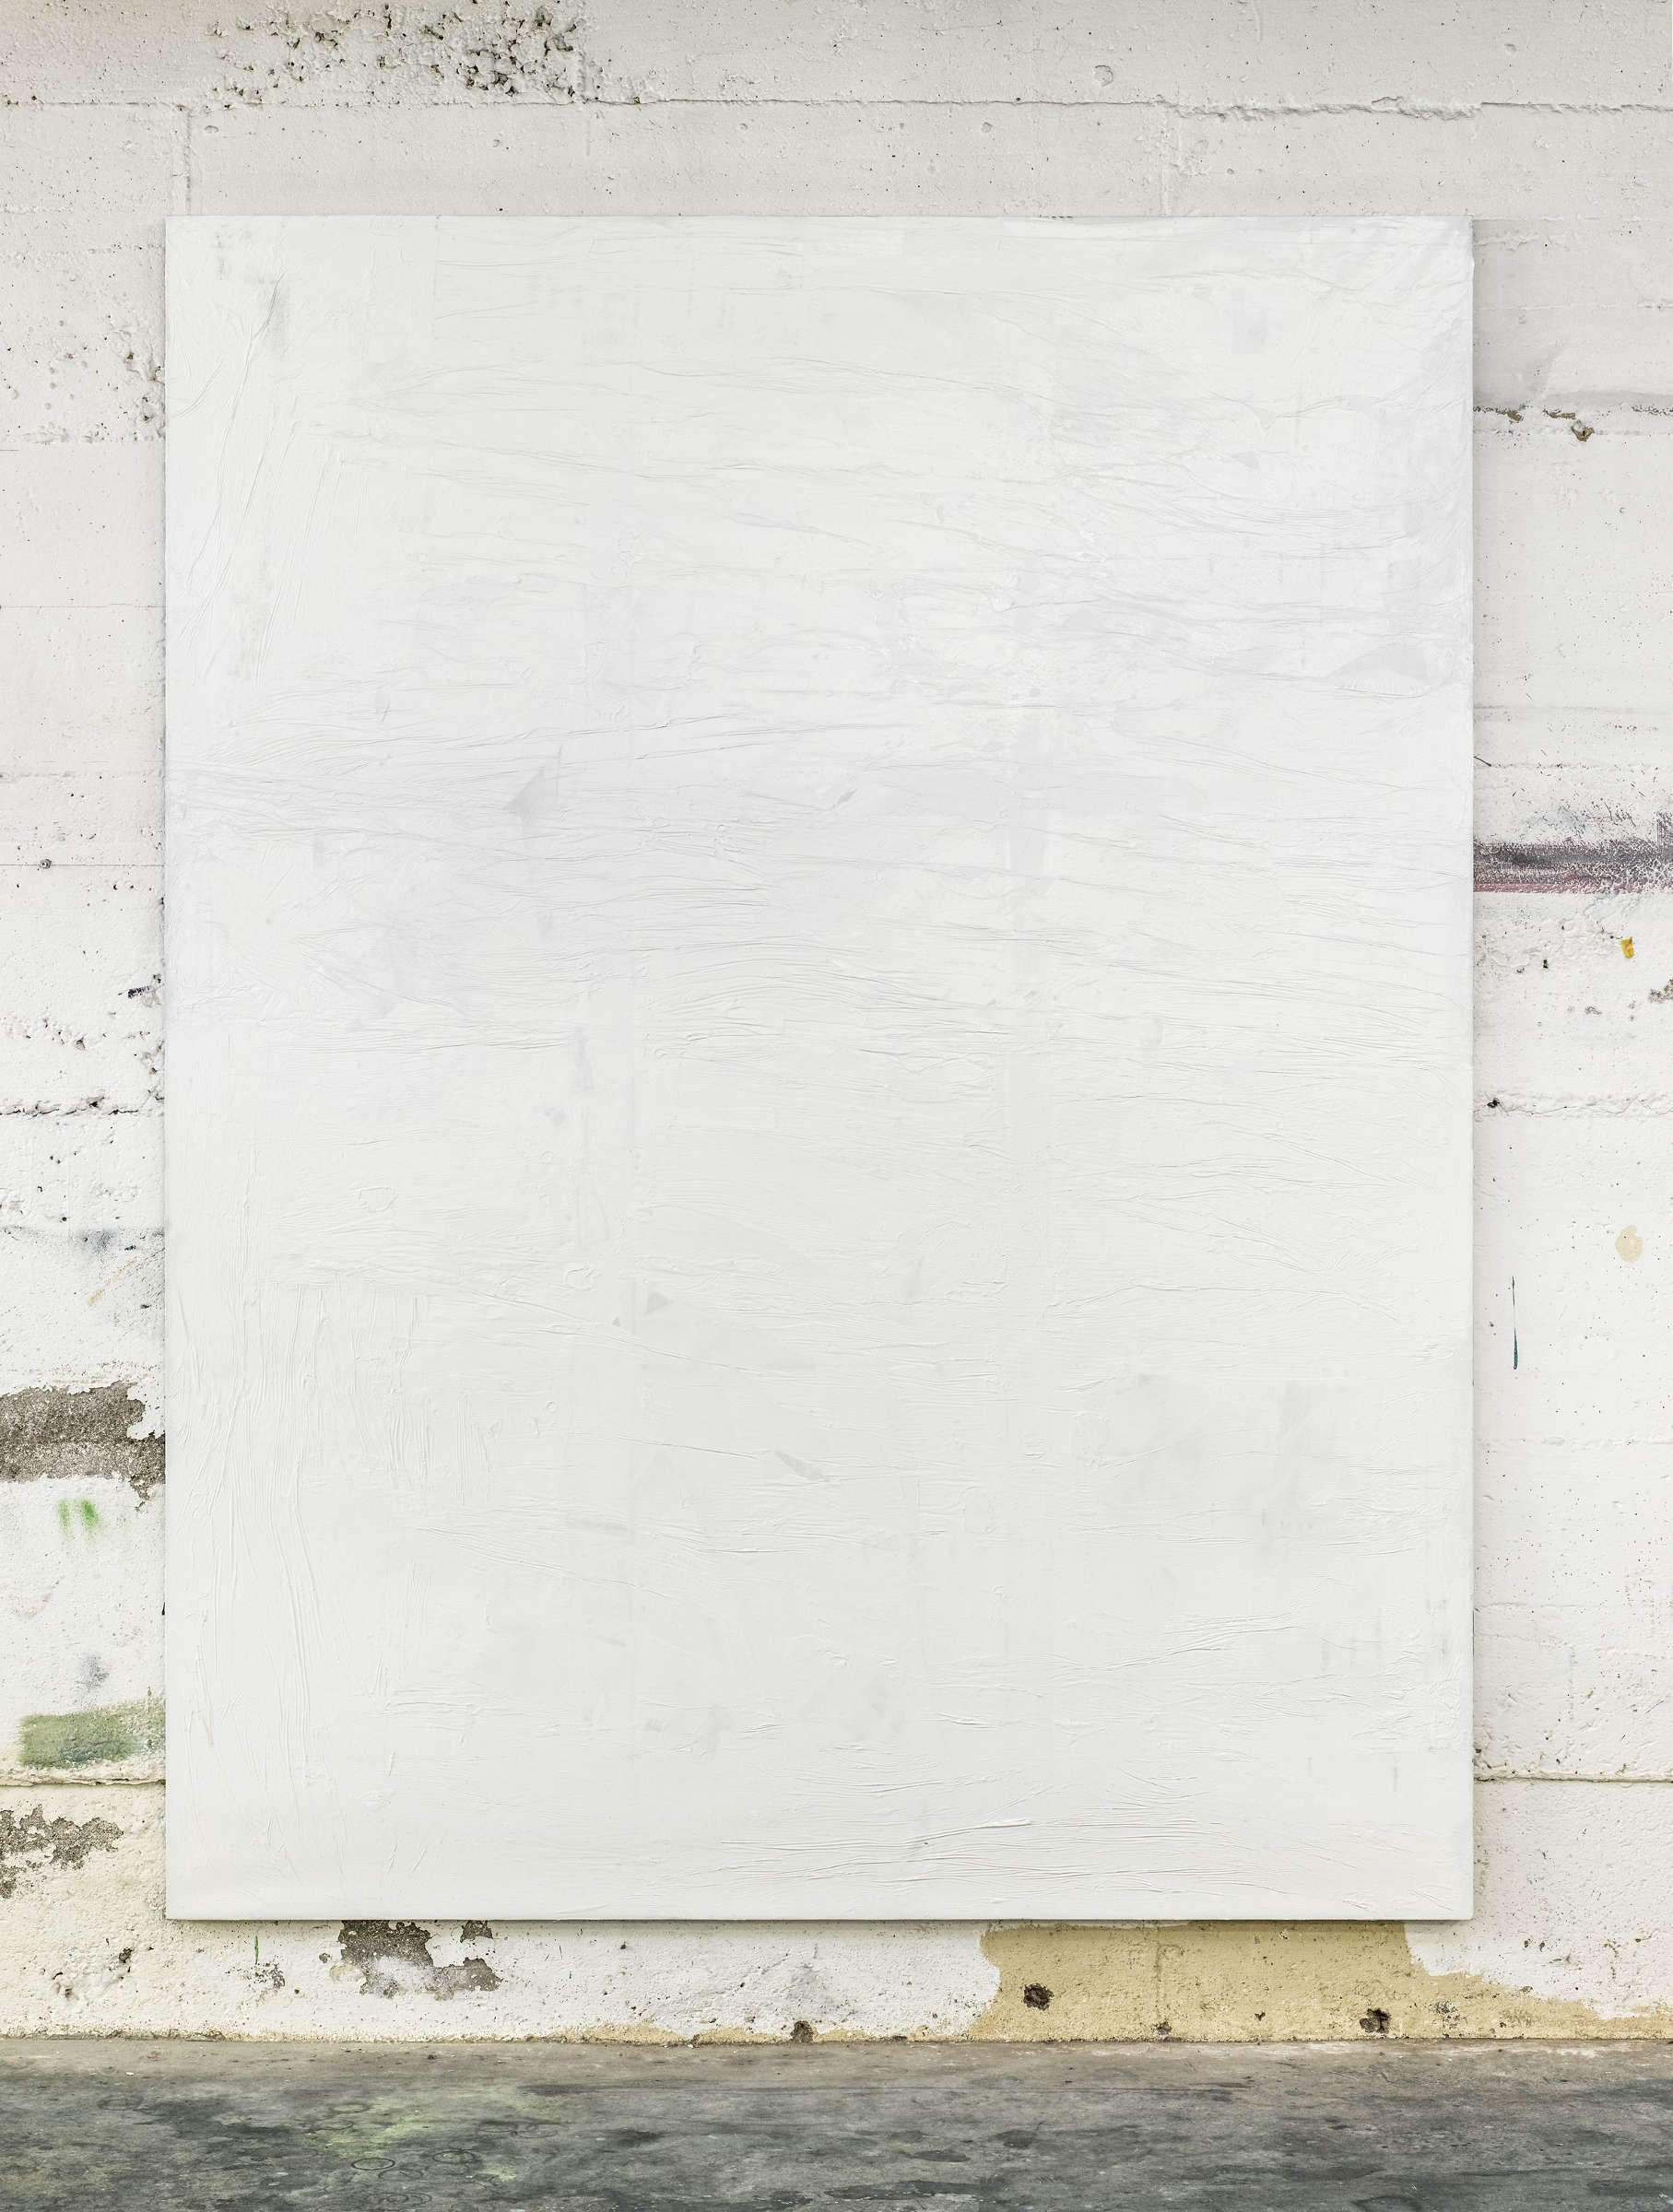 20_tiziano martini, 2015, untitled, white acrylic paint on polyester on wooden stretcher, cm 260x200, photo Dejna Saric